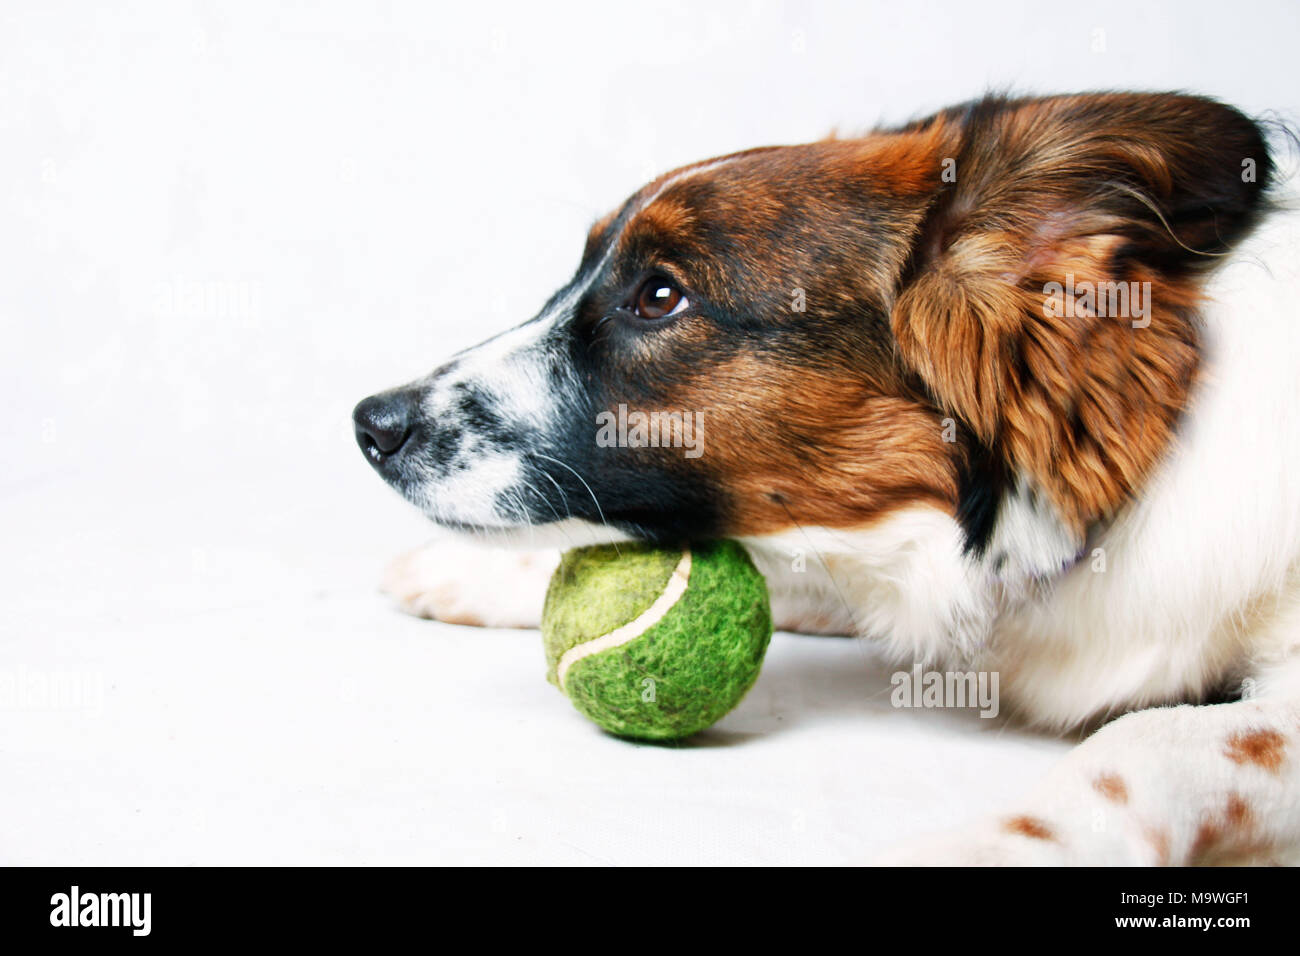 A cute looking dog puts his chin on a tennis ball, close up picture - Stock Image